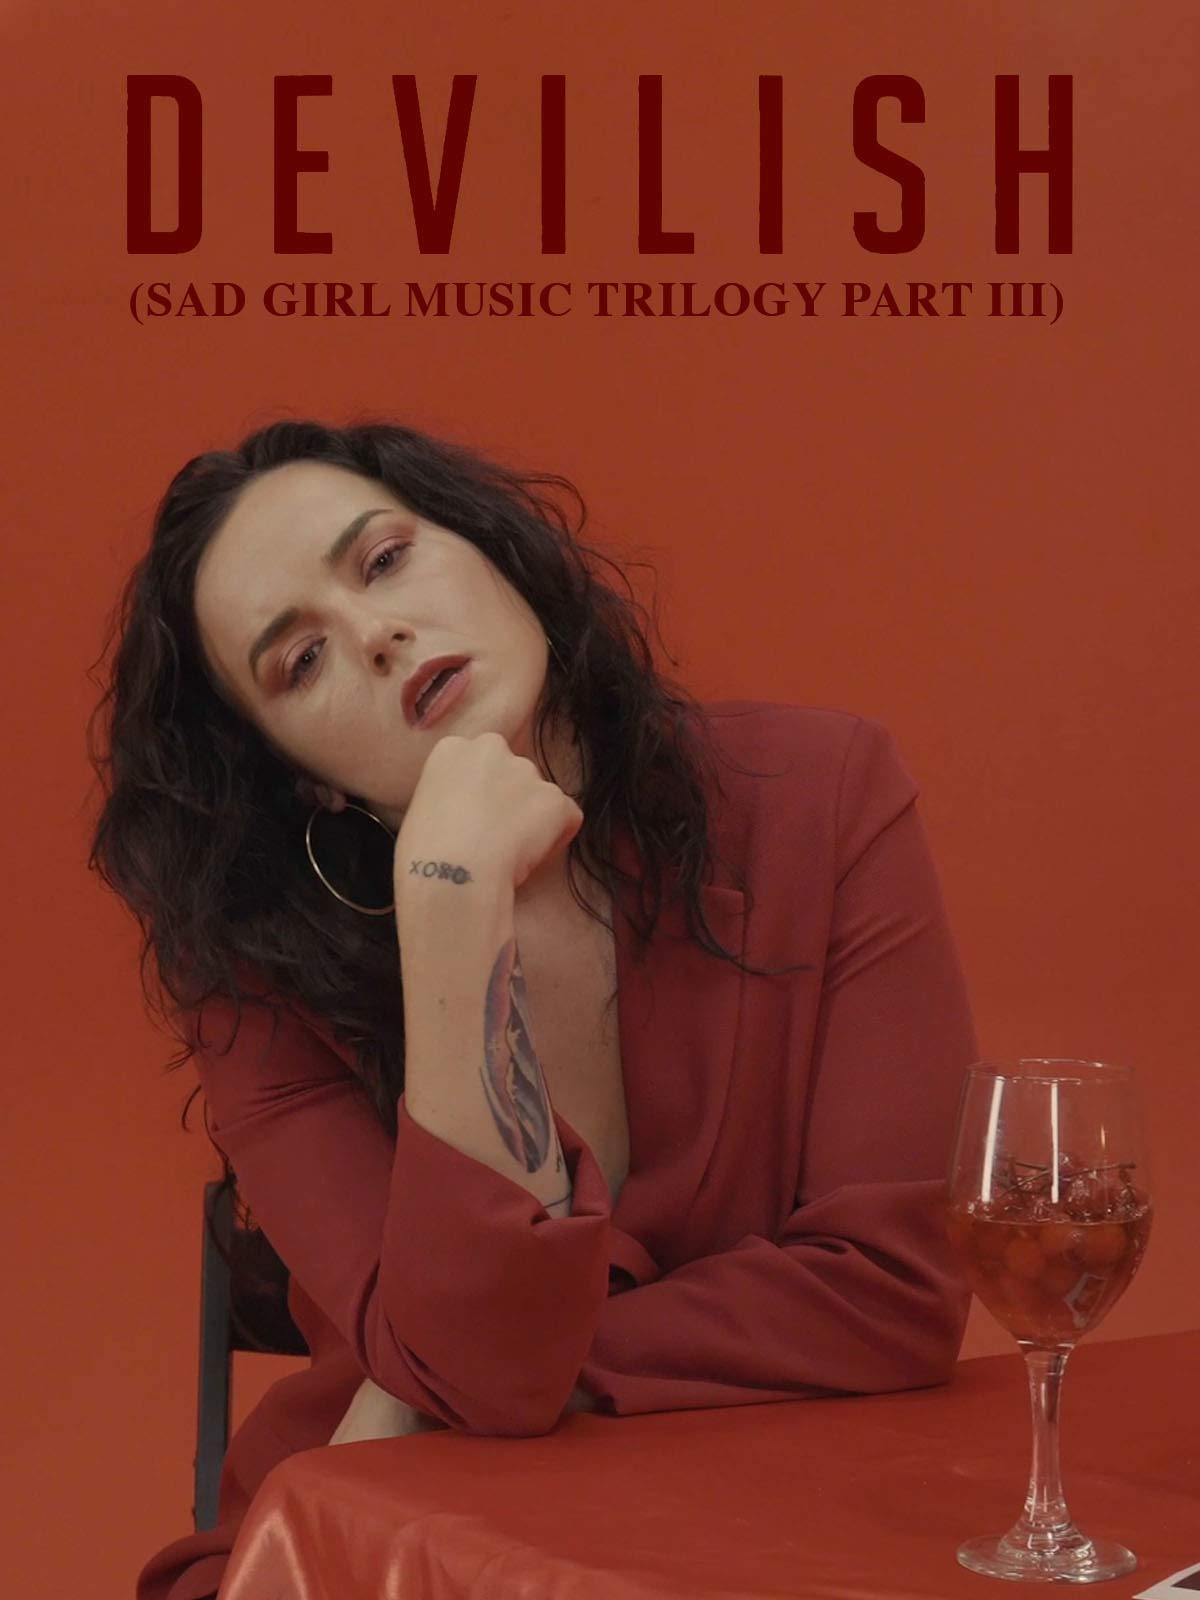 Devilish (Sad Girl Music Trilogy Part III) on Amazon Prime Video UK